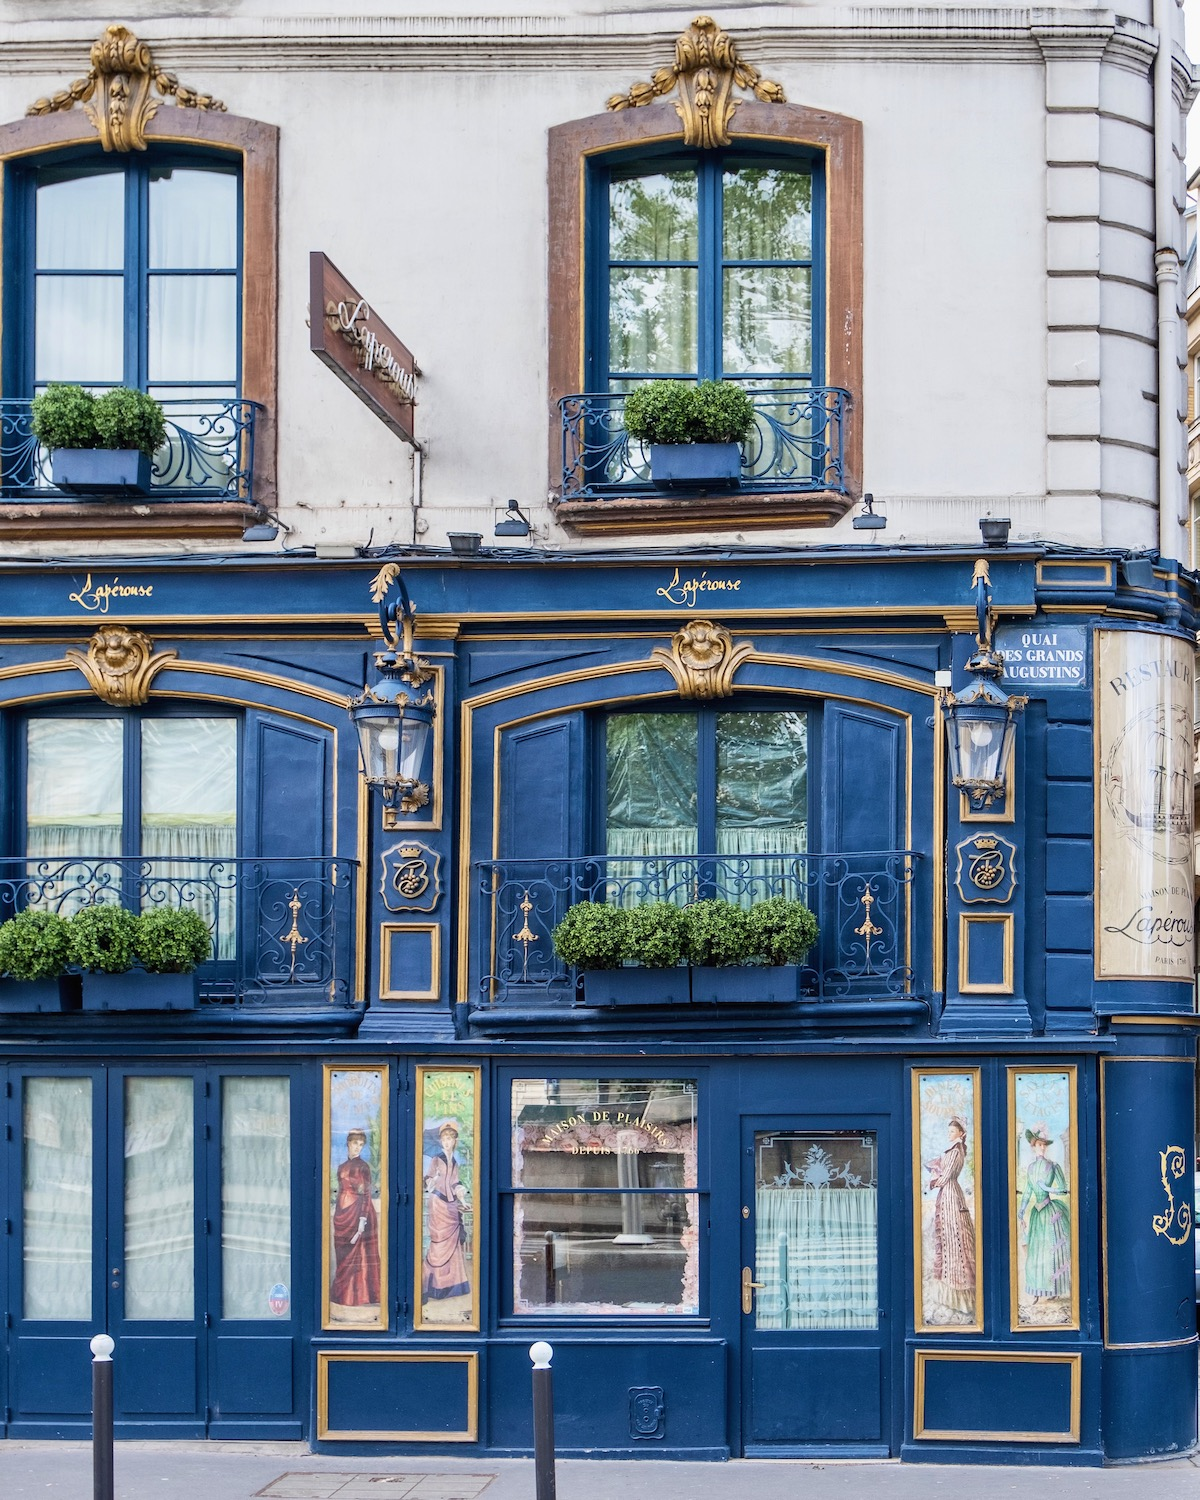 laperouse facade. five friday finds from france featuring a seine-side restaurant and how to get a french health pass